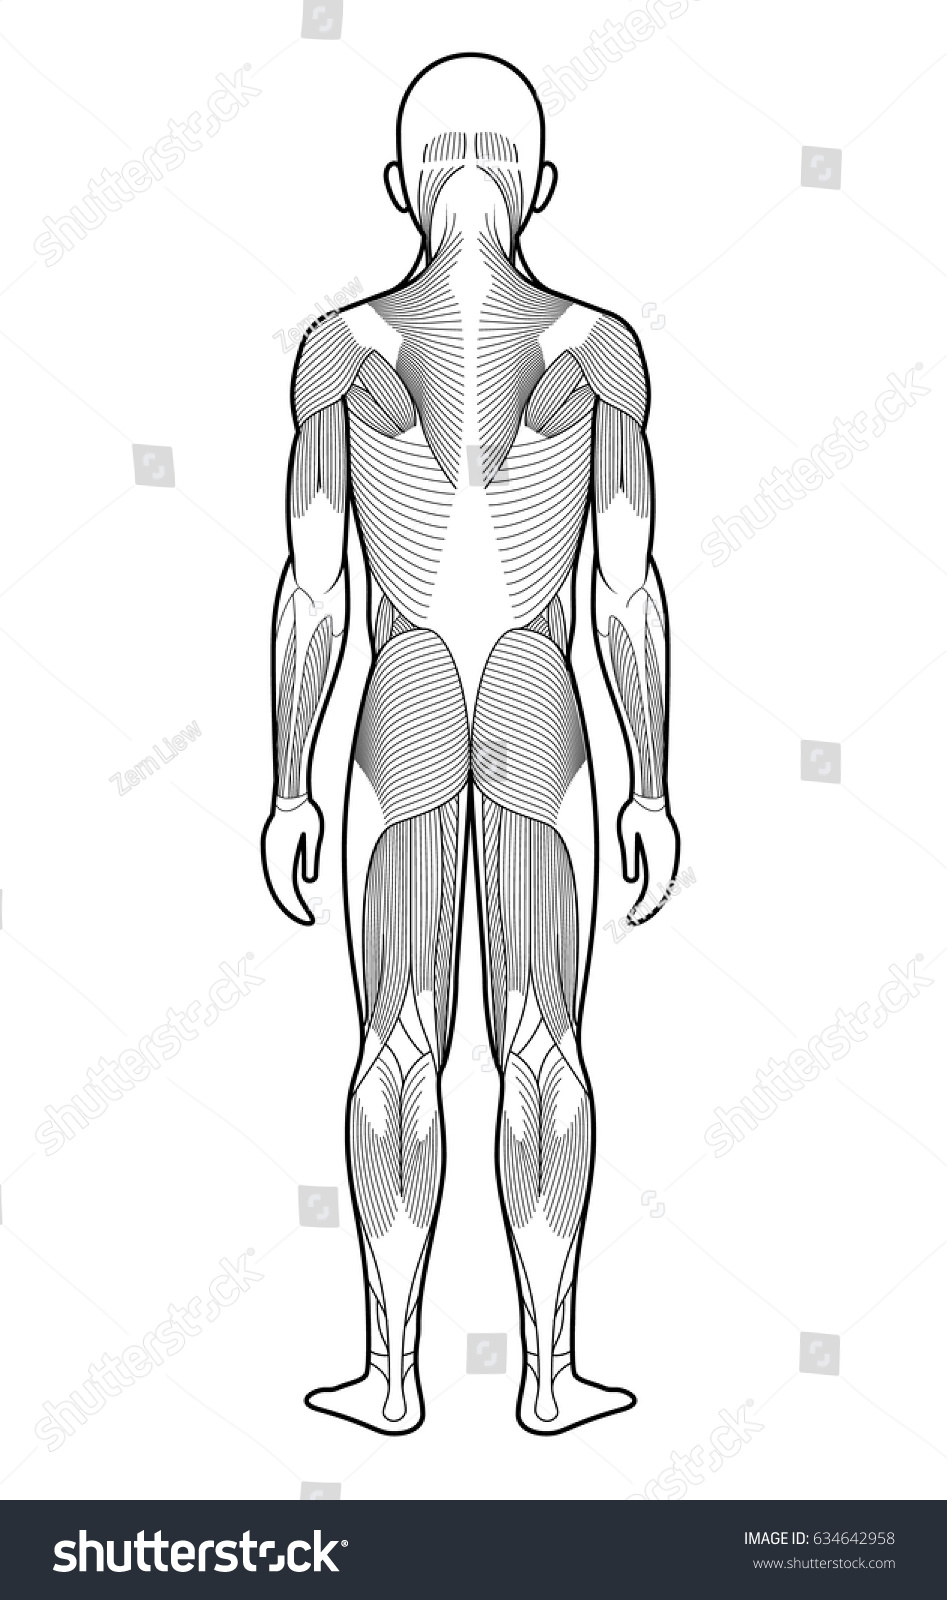 Stylized anatomy diagram showing major muscle stock vector 634642958 stylized anatomy diagram showing major muscle groups shown from the back posterior view ccuart Gallery